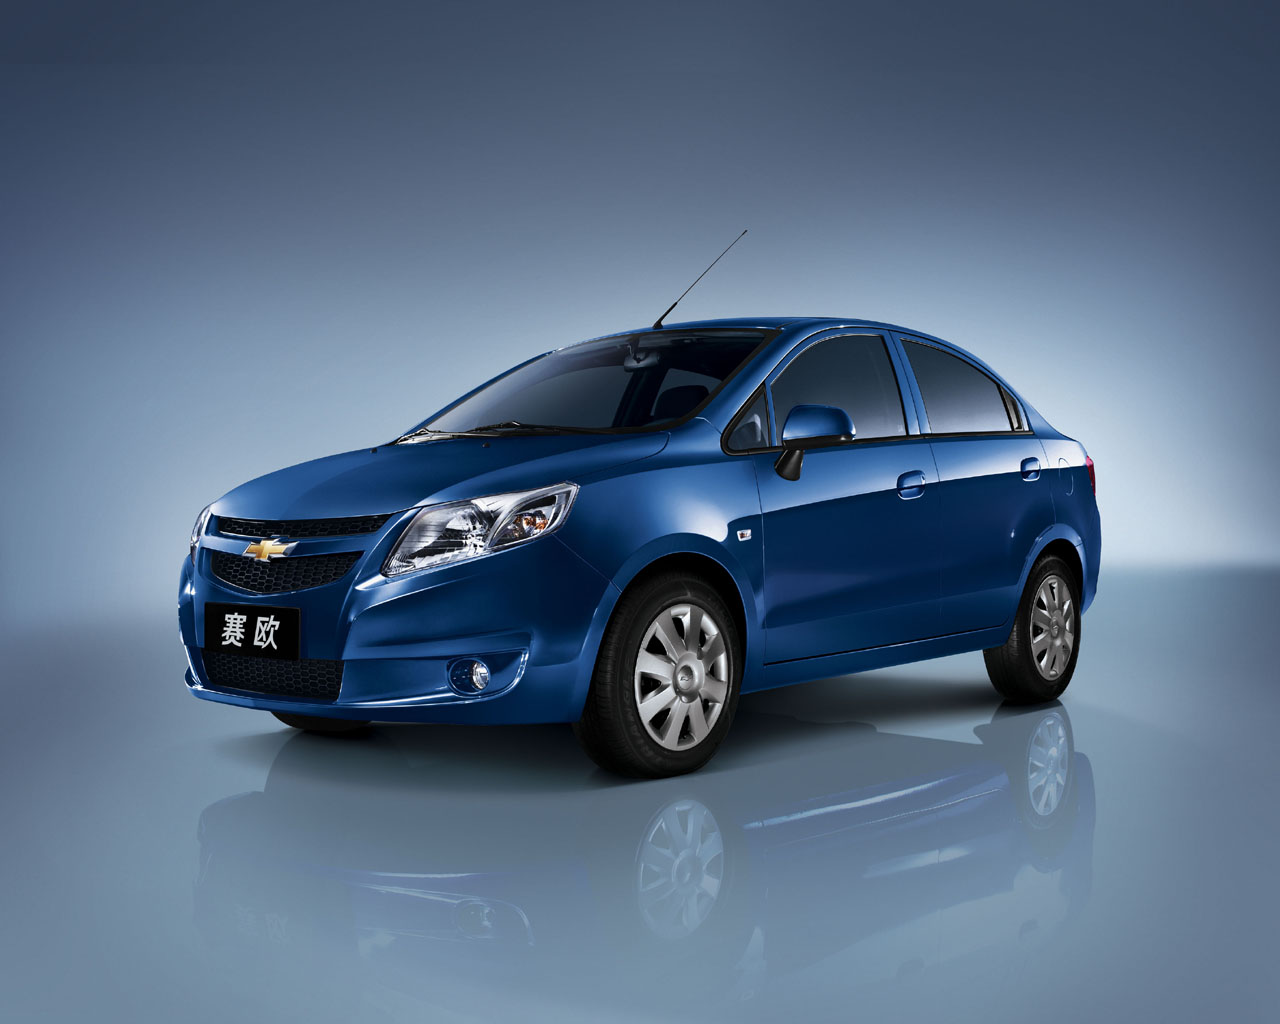 Upcoming Chevrolet Sail Sedan Picture Gallery